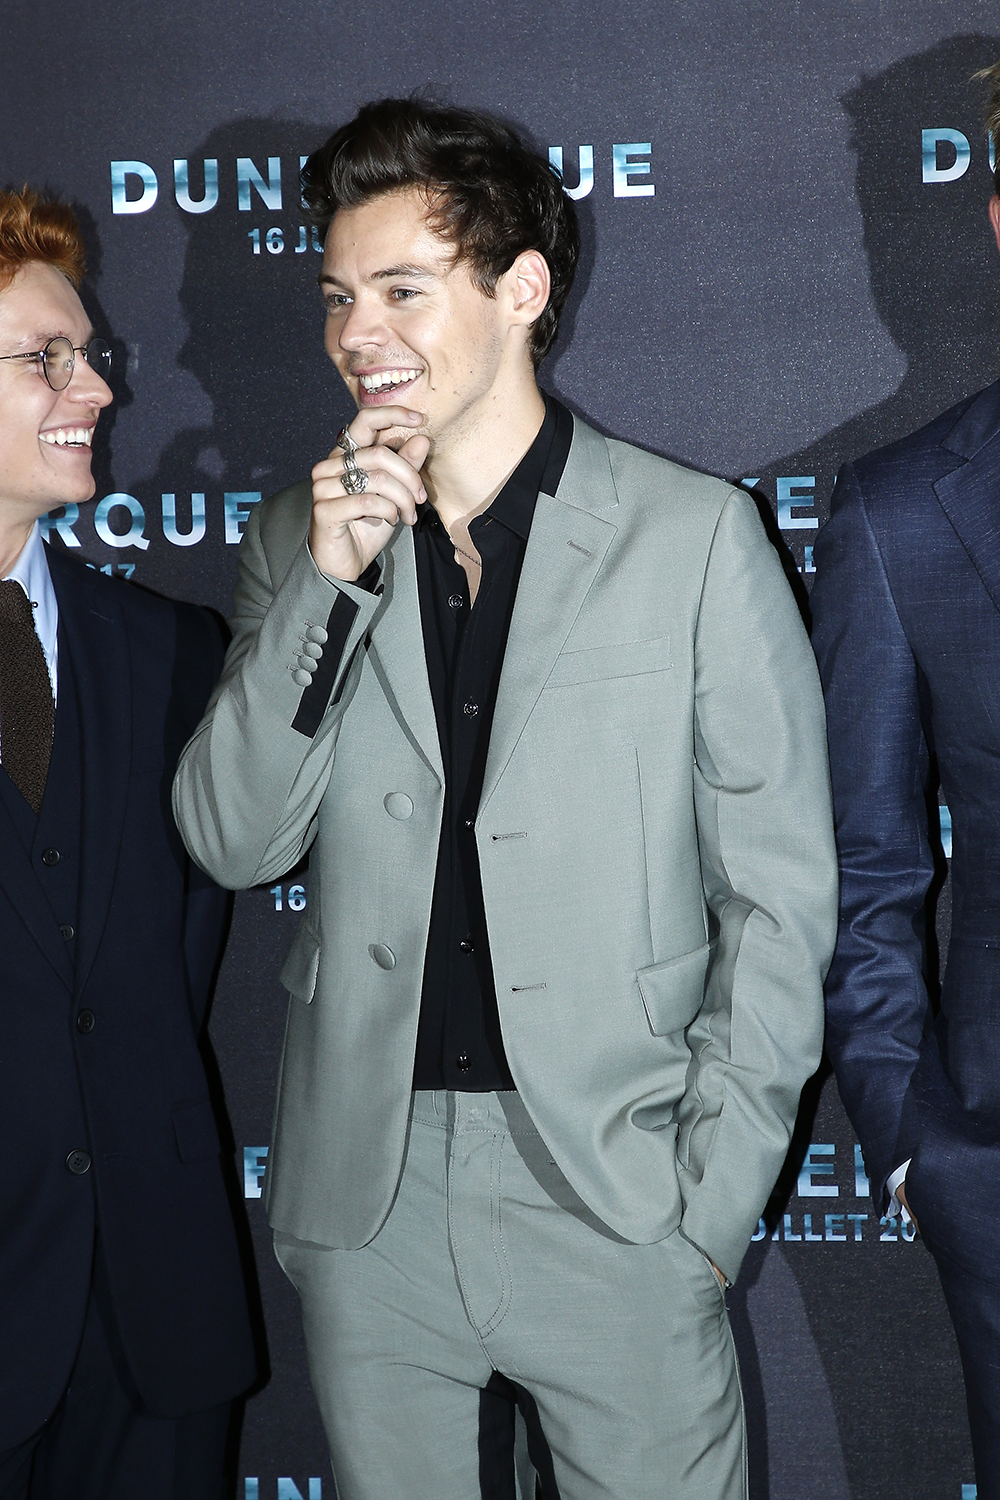 Harry Styles Suits Photos - Harry Styles Tour Outfits